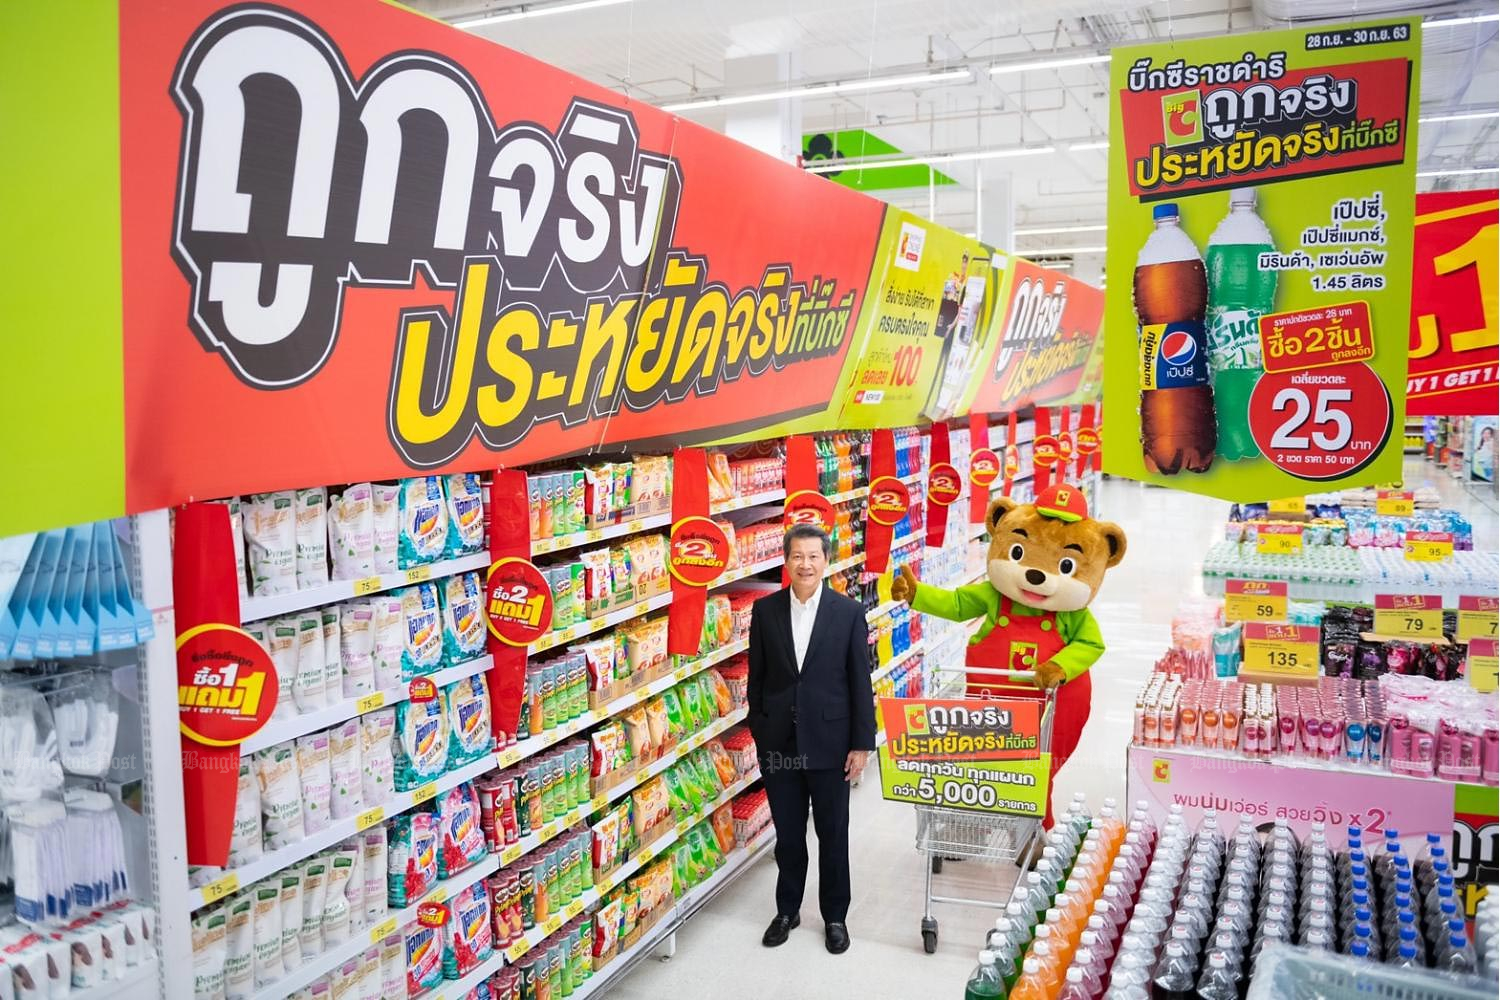 Mr Pattaphong announced a new campaign offering 10-40% discounts on essential goods at Big C Supercenter until Jan 3, 2021.